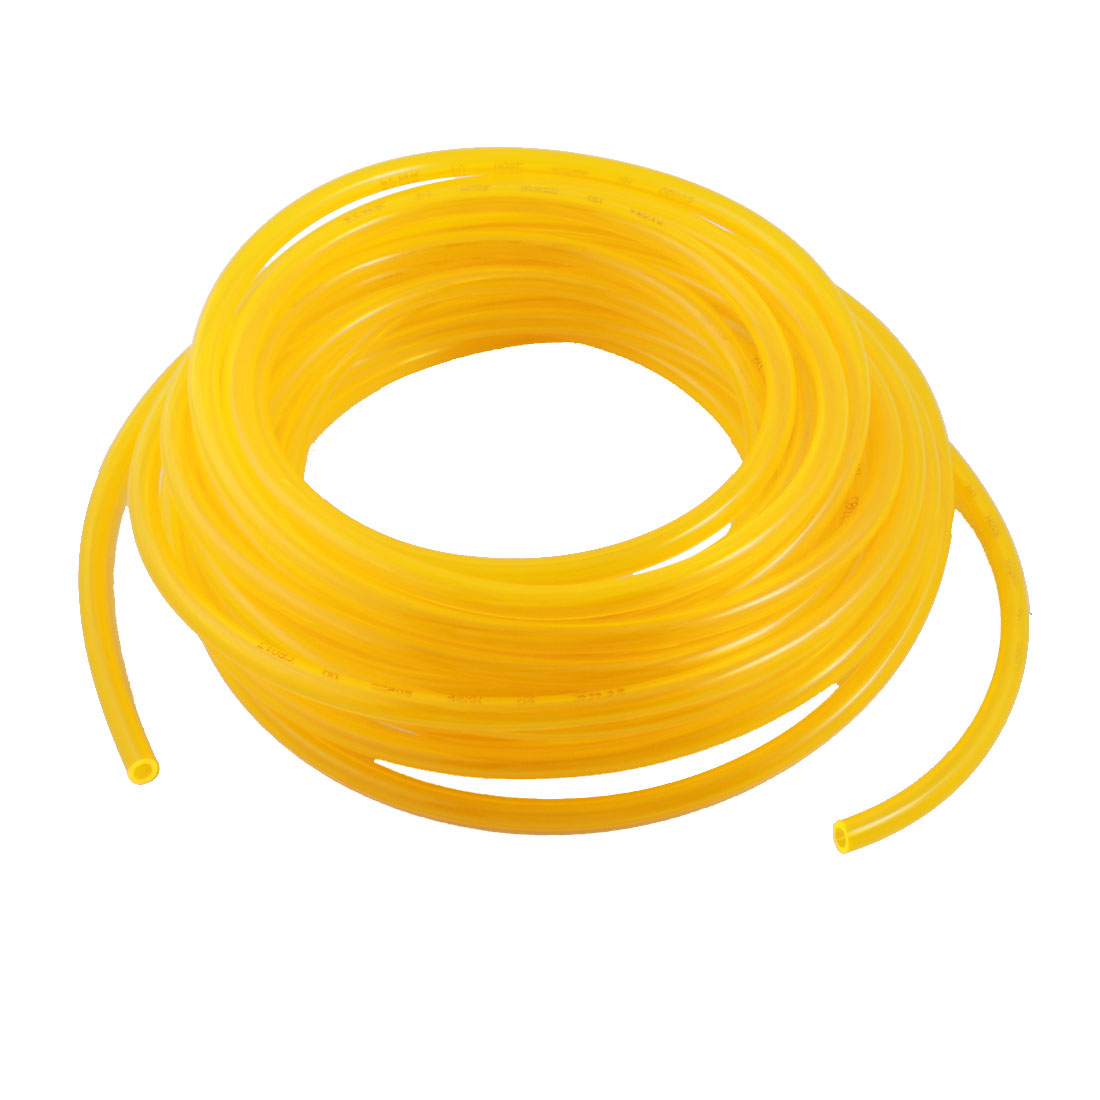 Engine Gas Fuel Oil Injection PU Line Tubing Tube 5mmx8mm Dia 33Ft Clear Yellow